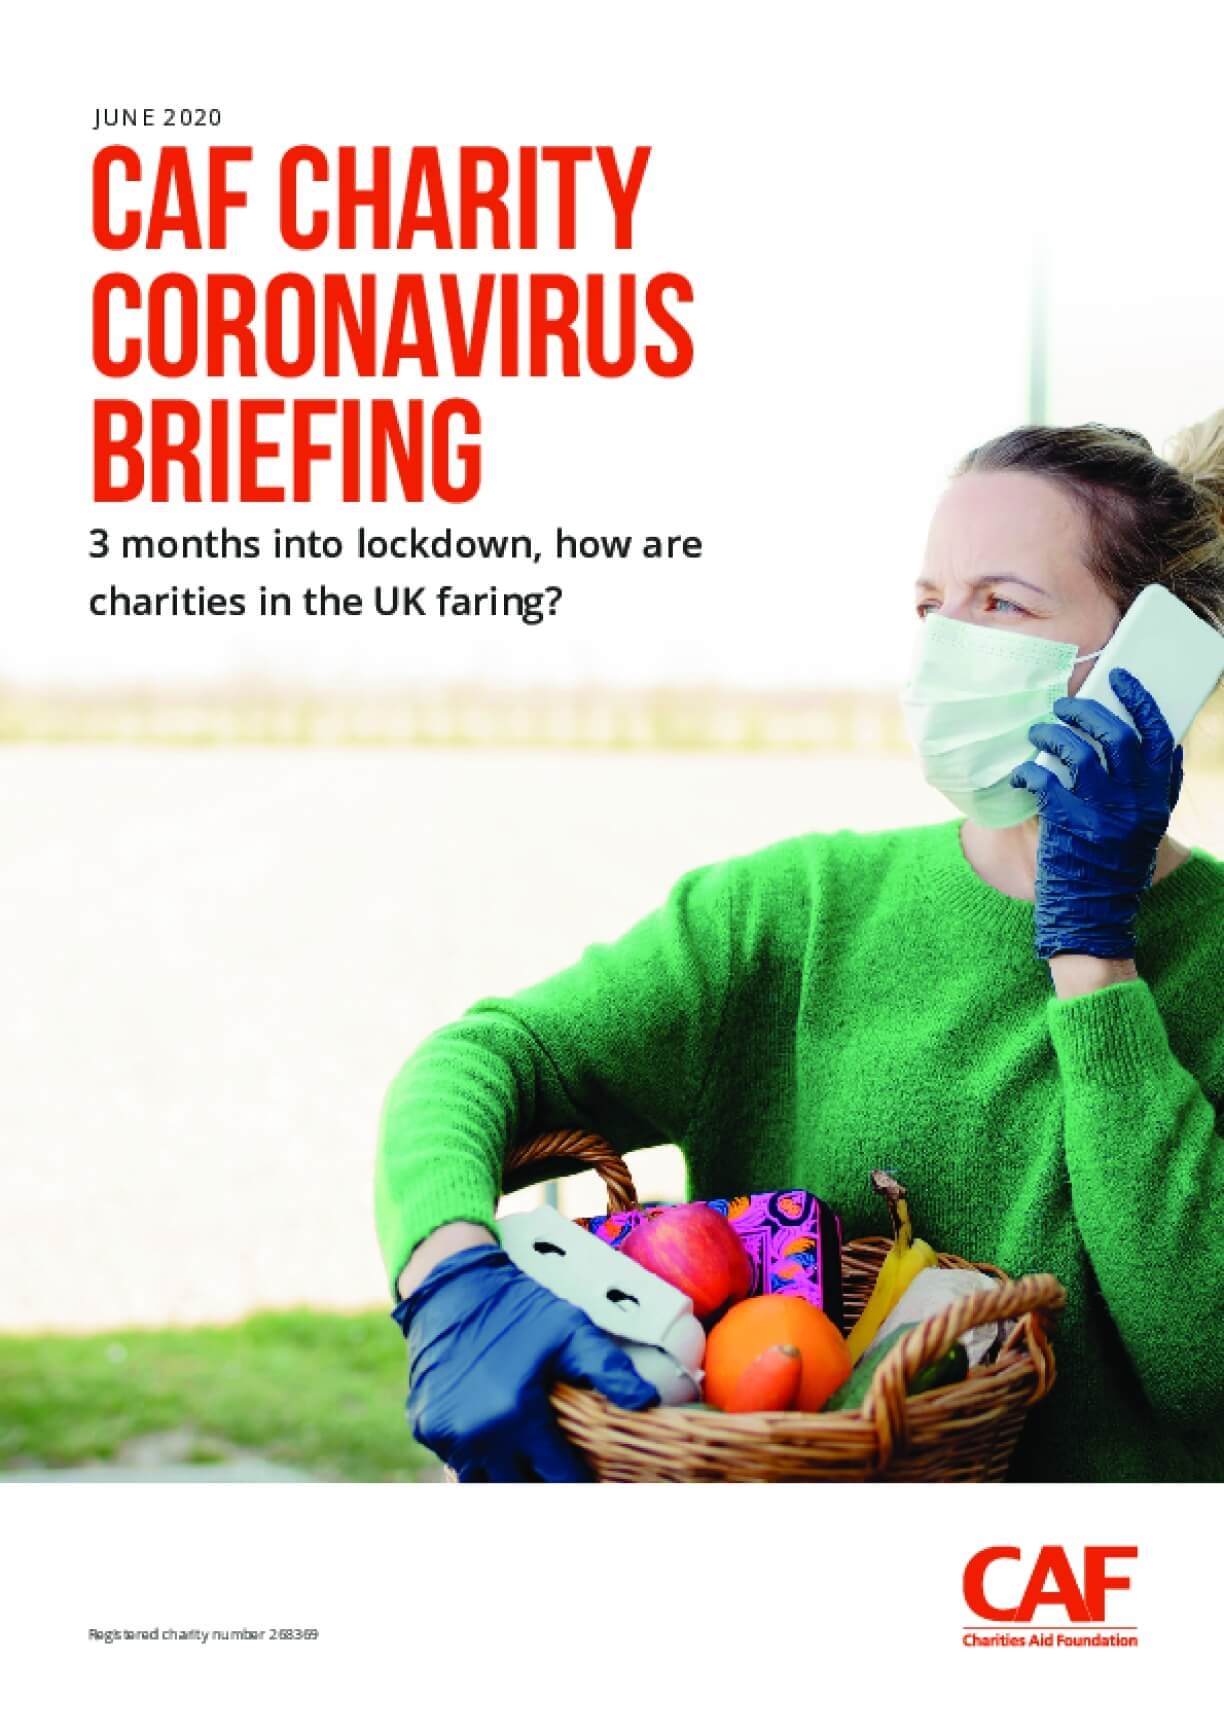 CAF Charity Coronavirus Briefing: 3 Months into Lockdown, How Are Charities in the UK Faring?